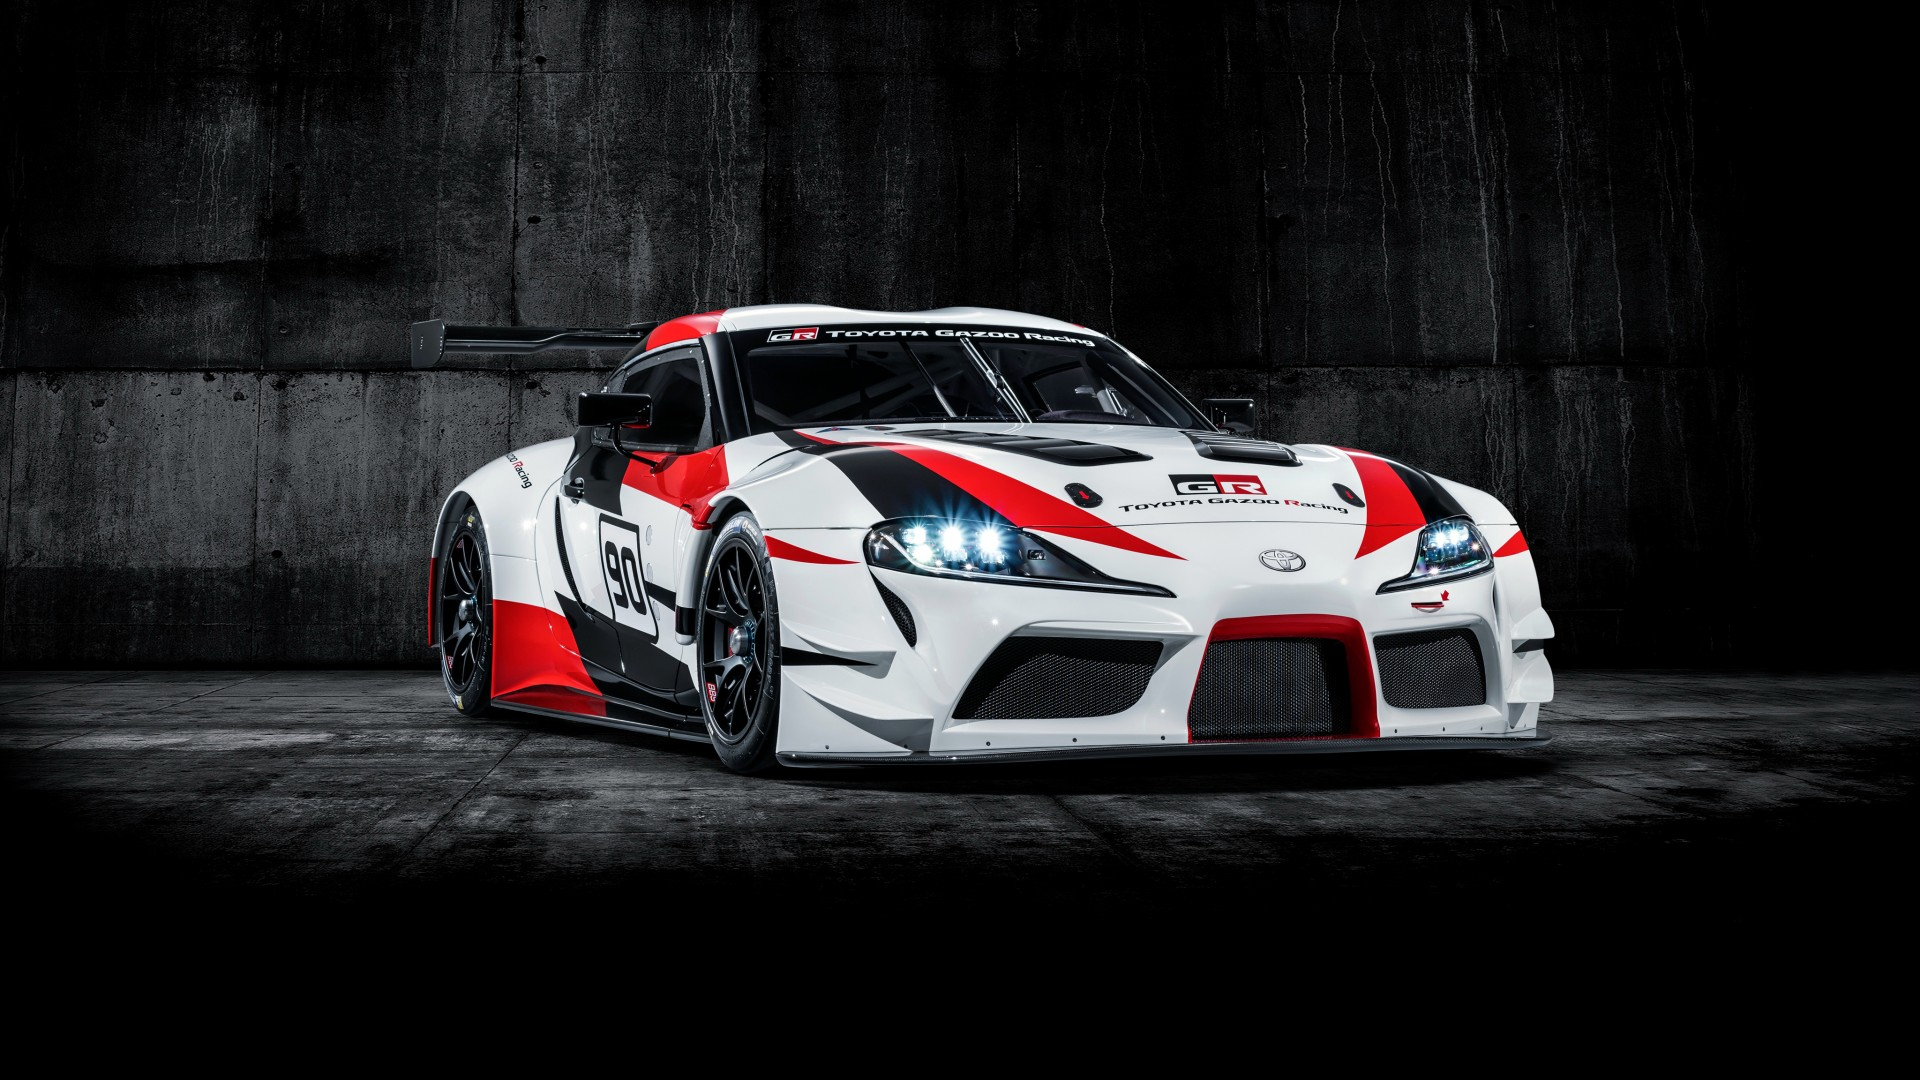 2018 Toyota Gr Supra Racing Concept 4k 5 Wallpaper Hd